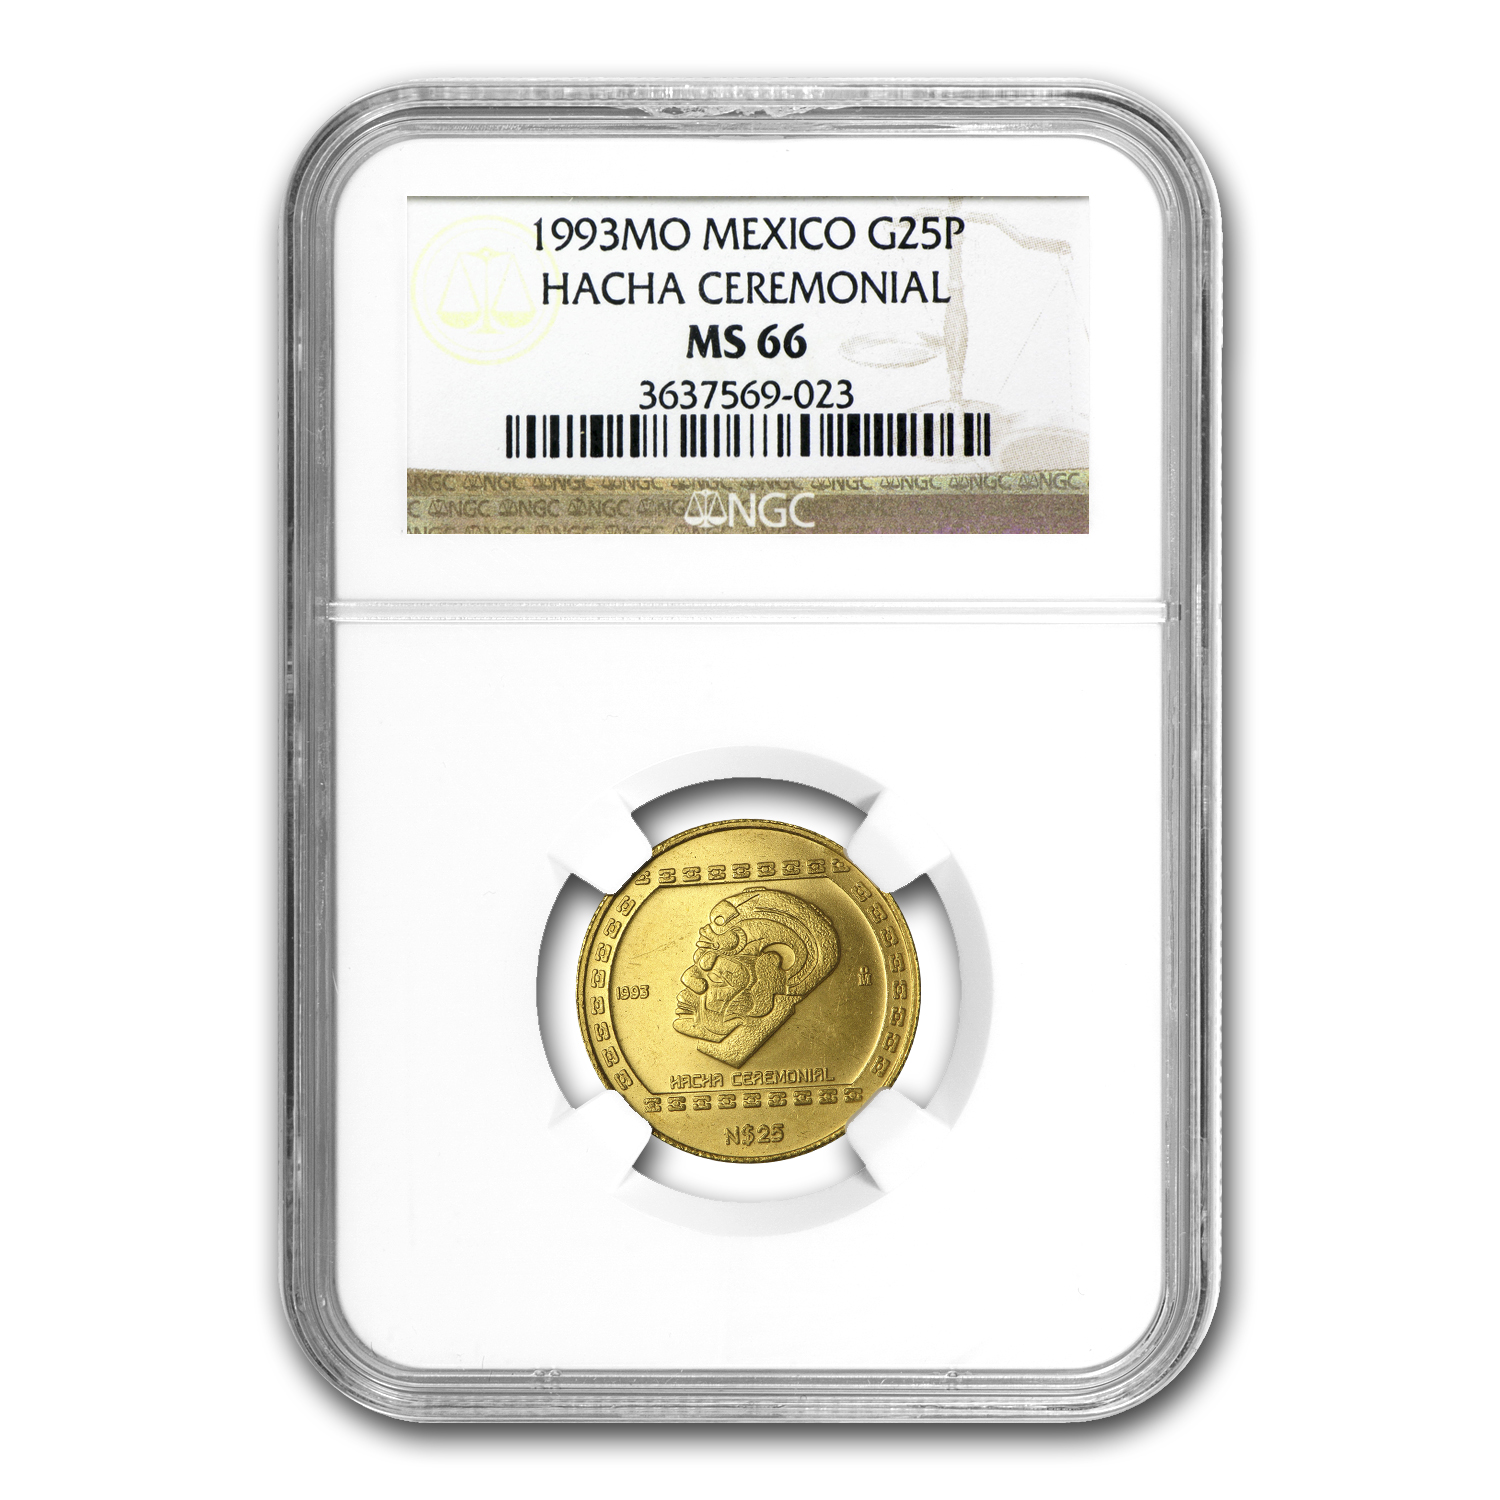 1993 Mexico 25 Pesos Gold Hacha Ceremonial MS-66 NGC